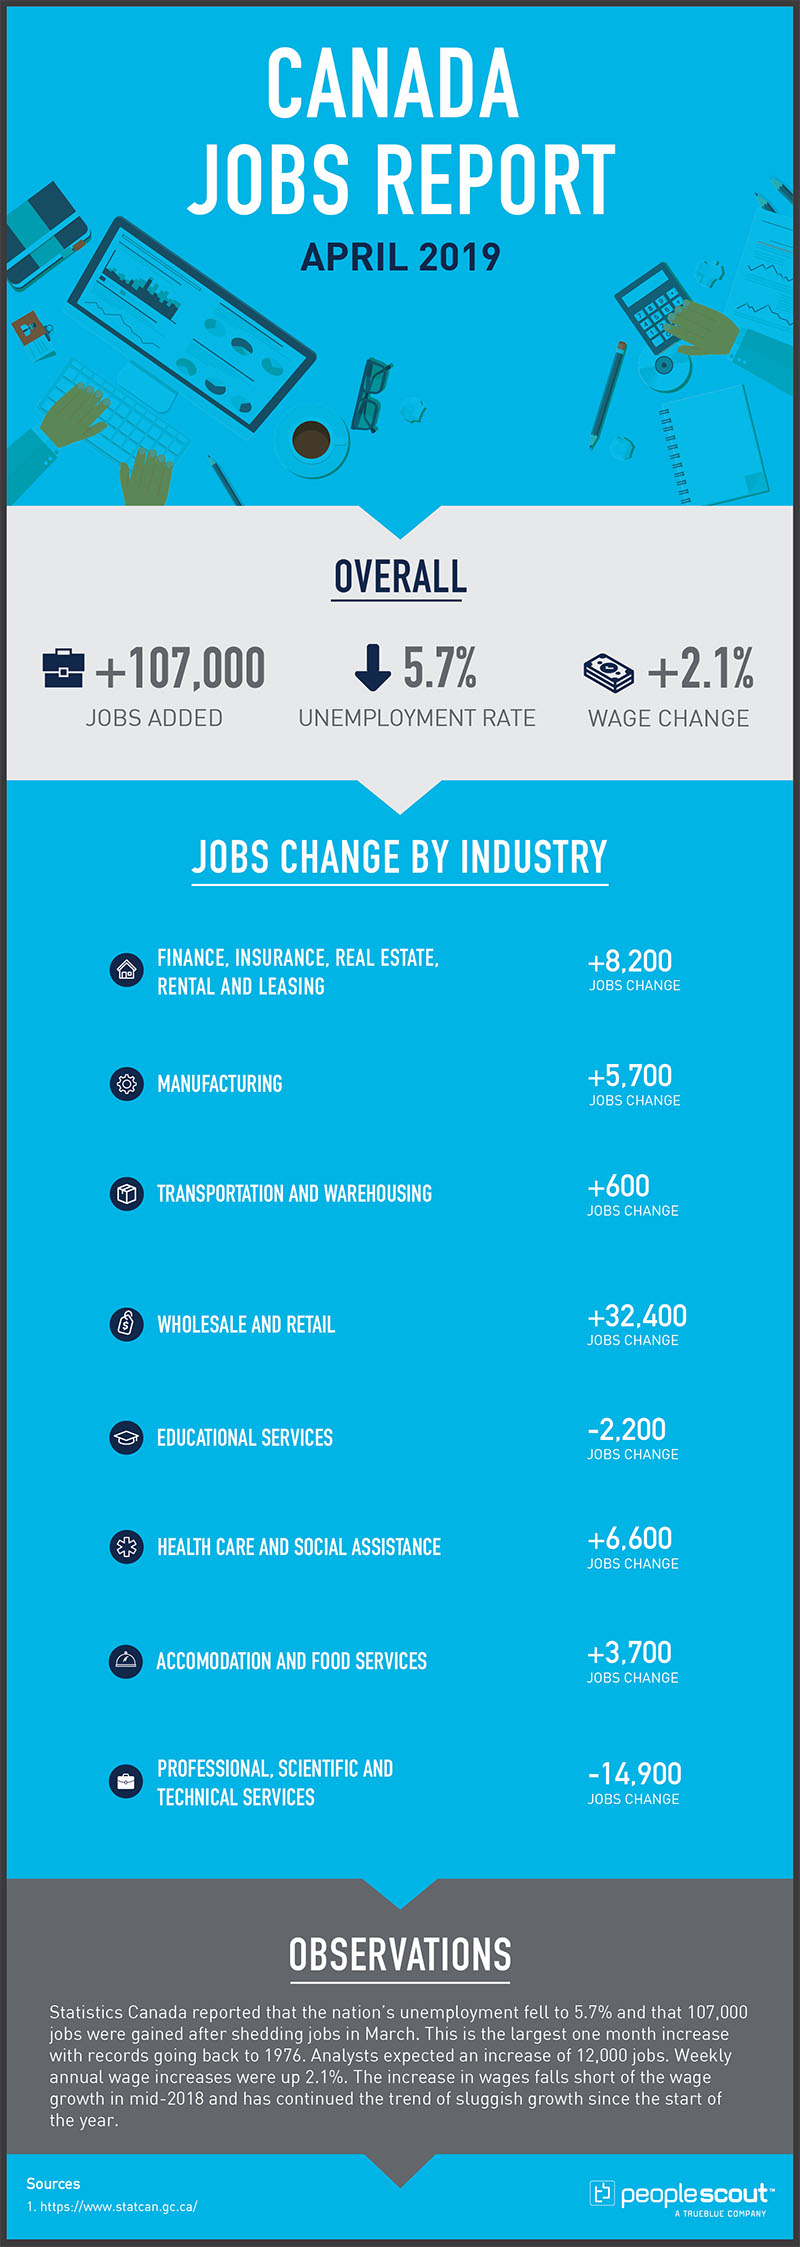 April 2019  OVERALL  Overall Jobs Gained/Lost:  +107,000 Overall Unemployment Rate: 5.7 per cent (Down arrow) Overall Weekly Wage Change: + 2.1 per cent (Down arrow)  INDUSTRY BREAKDOWN  (Table 2 for Job Changes) (Statistics Canada Website Weekly Wages Canada)  Finance, Insurance, Real Estate, Rental and Leasing Jobs Change: +8,200  Manufacturing Jobs Change: +5,700  Transportation and Warehousing Jobs Change: +600  Wholesale and Retail Jobs Change: +32,400  Educational Services Jobs Change: -2,200  Health Care and Social Assistance Jobs Change: +6,600  Accomodation and Food Services Jobs Change: +3,700  Professional, Scientific and Technical Services  Jobs Change: -14,900  Year over Year Weekly Wage Changes All Workers 15 and Over:  +2.1% Management Occupations:  +0.4% Business Finance and Administration Occupations:  +3.8% Health Occupations:  +2.2% Occupations in education, law and social, community and government services:  +1.5% Occupations in art, culture, recreation and sport: +3.7% Sales and service occupations:  +2.5% Trades, transport and equipment operators and related occupations:  +2.2% Occupations in manufacturing and utilities:  +6.4%  Observations  Statistics Canada reported that the nation's unemployment fell to 5.7% and that 107,000 jobs were gained after shedding jobs in March. This is the largest one month increase with records going back to 1976. Analysts expected an increase of 12,000 jobs. Weekly annual wage increases were up 2.1%. The increase in wages falls short of the wage growth in mid-2018 and has continued the trend of sluggish growth since the start of the year.